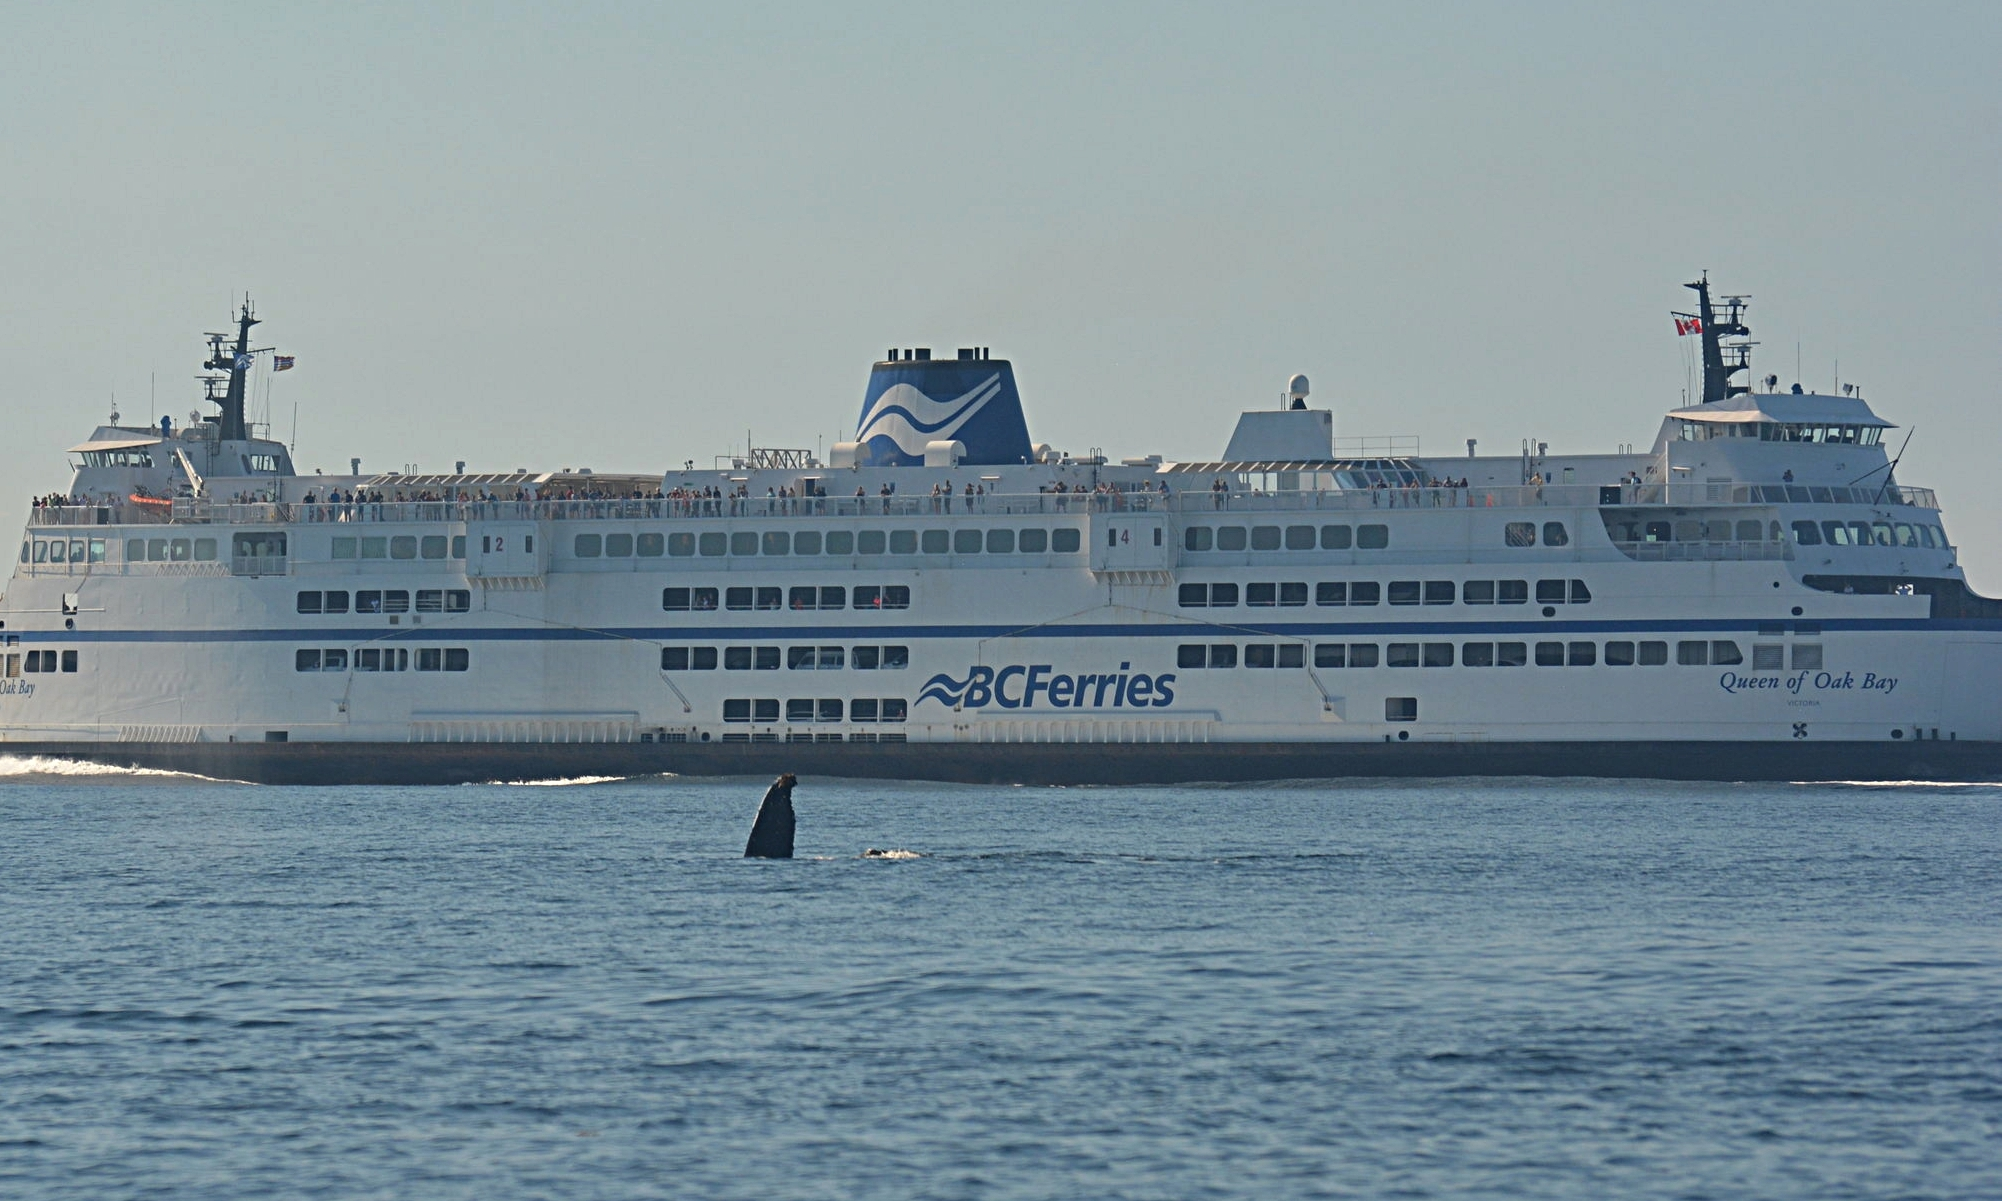 A humpback whale flashing a fluke in front of the BC ferries. Photo by Alanna Vivani.